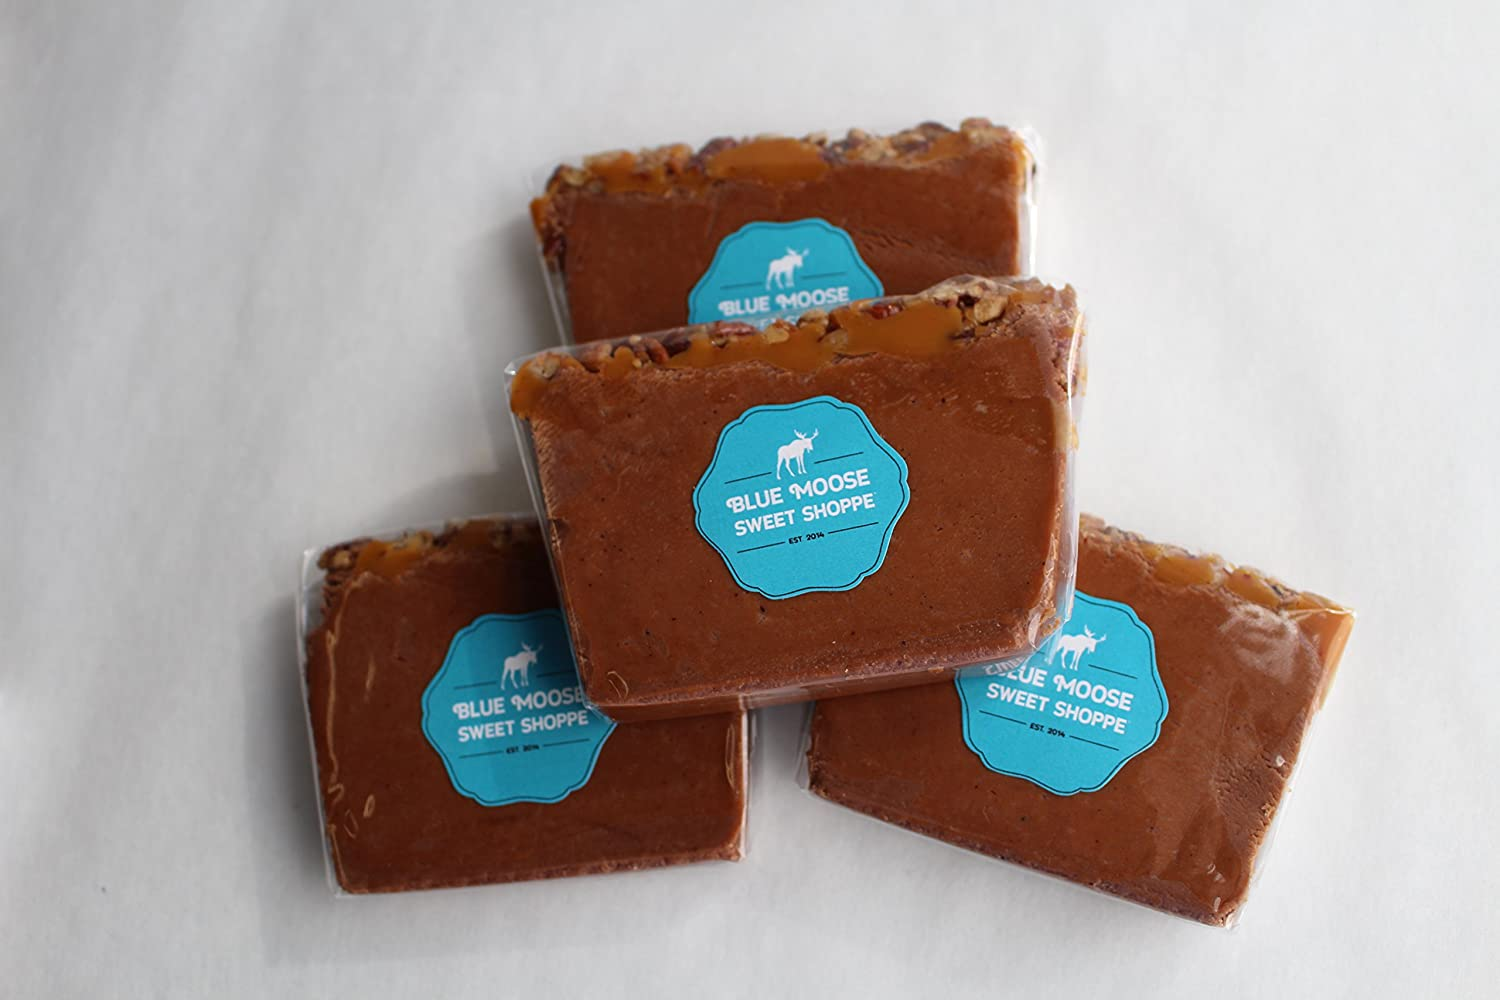 Amazon.com : Pecan Turtle 1 LB   Gourmet Fudge   The Best Copper-Kettle Fudge   Desserts and Candy   Holiday Gifts 1 LB : Grocery & Gourmet Food